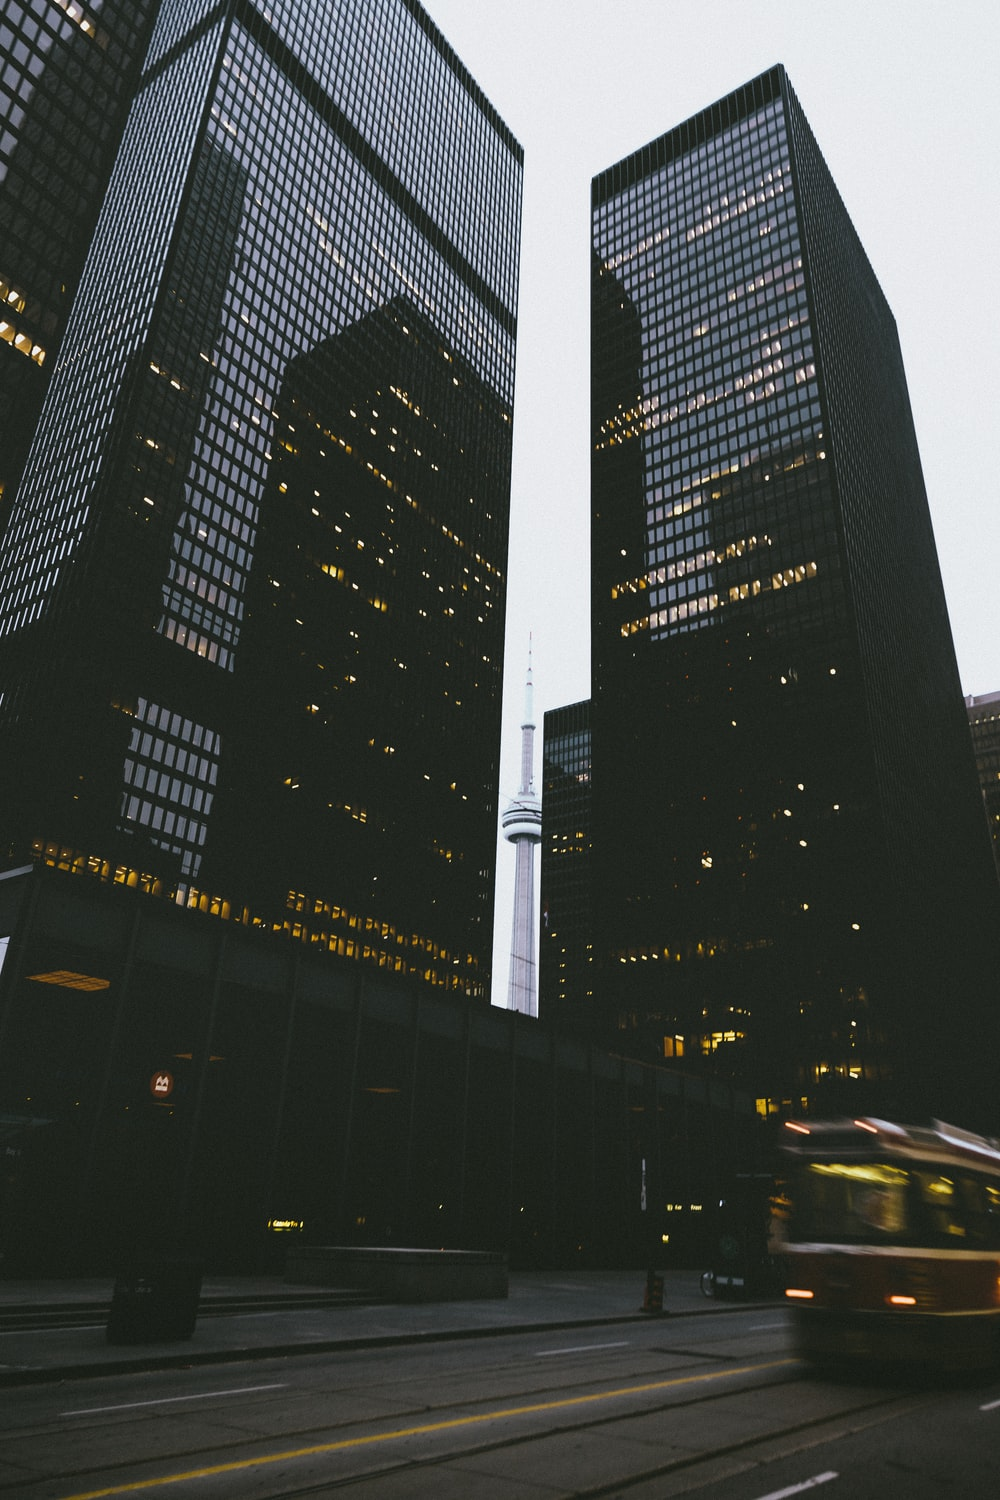 two black city buildings during daytime in time lapse photography